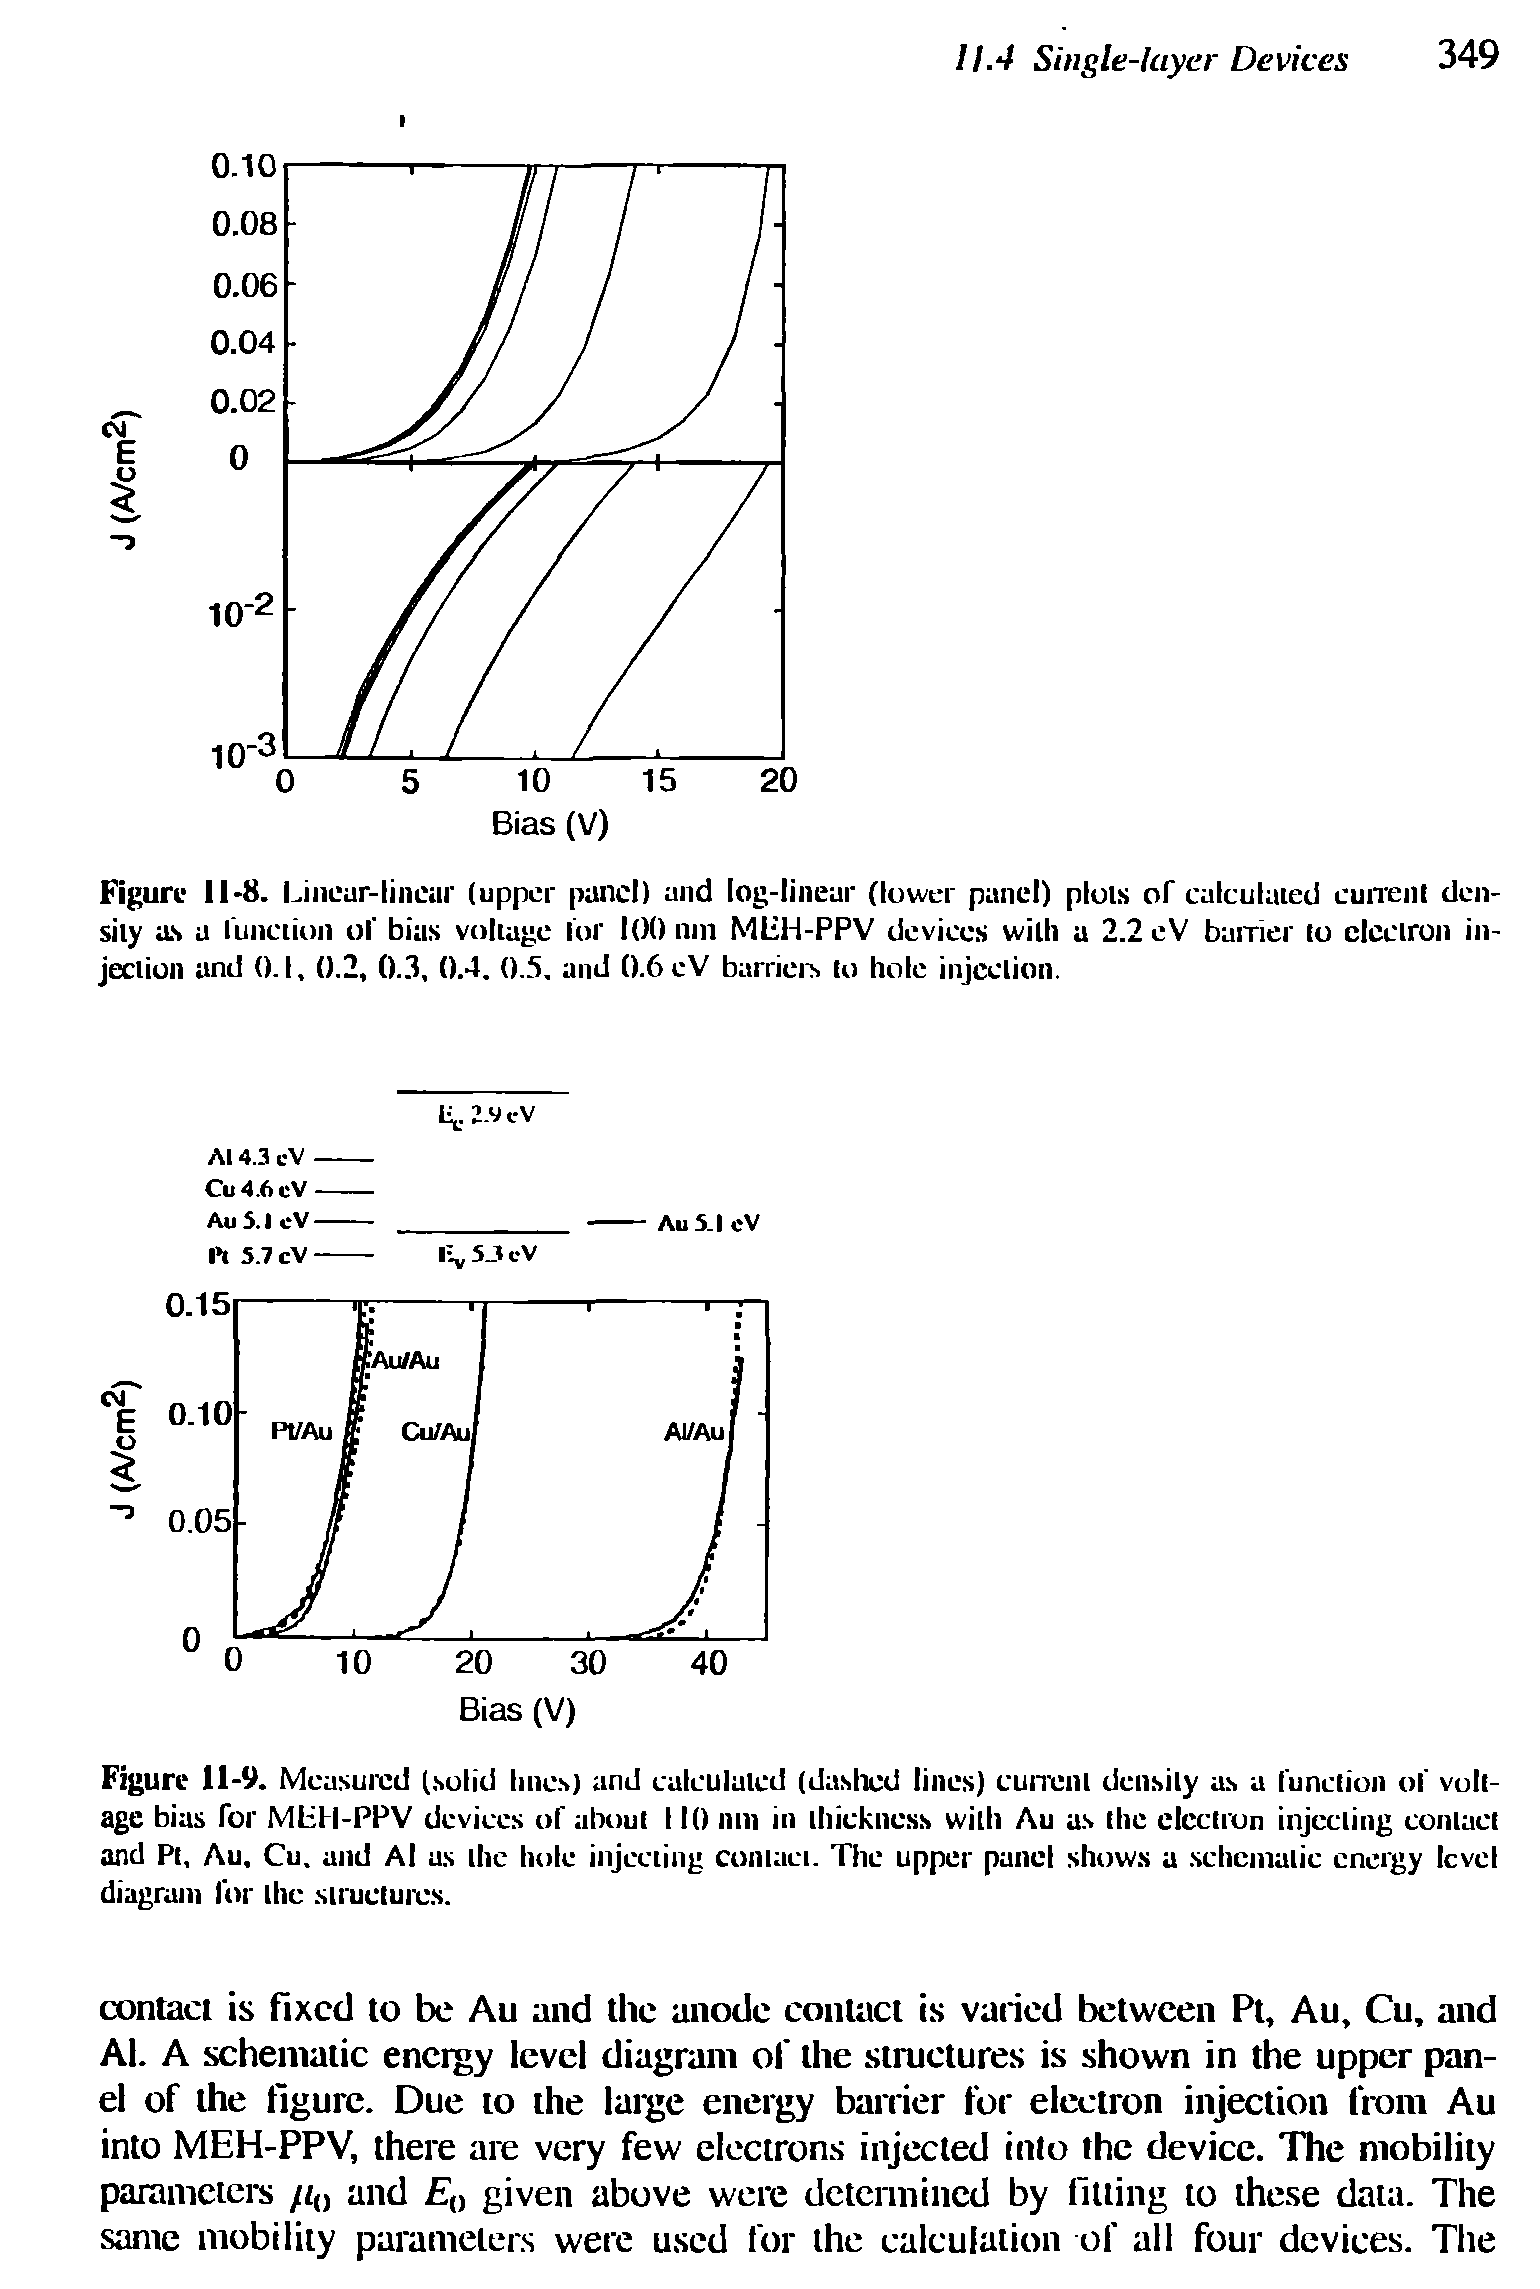 Figure 11-8. Linear-linear (upper panel) and log-linear (lower panel) plots of calculated current density as a (unction of bias voltage for 100 nm MliH-PPV devices with a 2.2 eV barrier to electron injection and 0.1, 0.2, 0.3, 0.4. 0.5. and 0.6 eV barriers to hole injection.